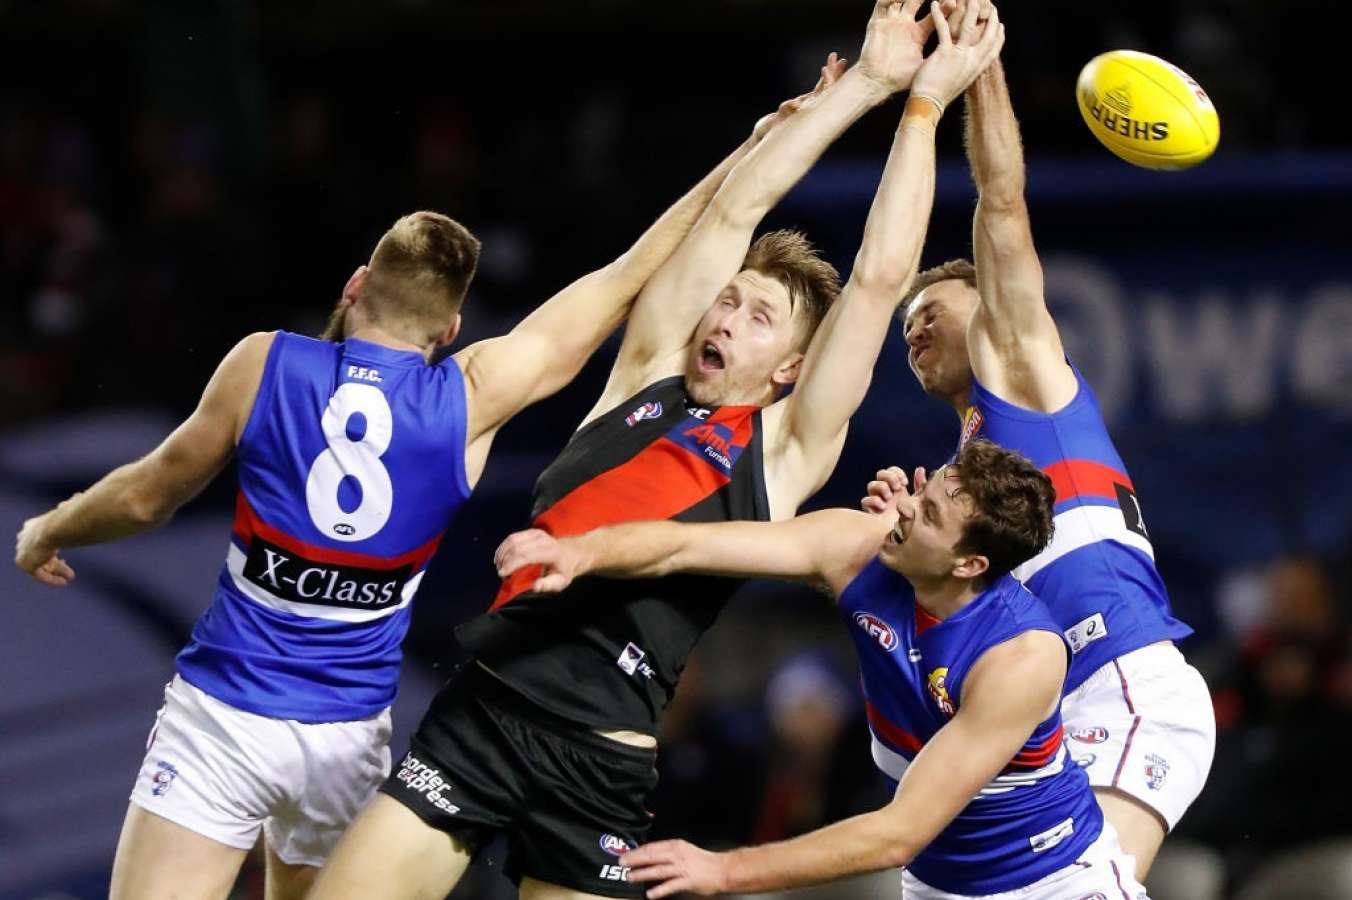 Afl round 14 2021 betting sites soccervista-soccer betting